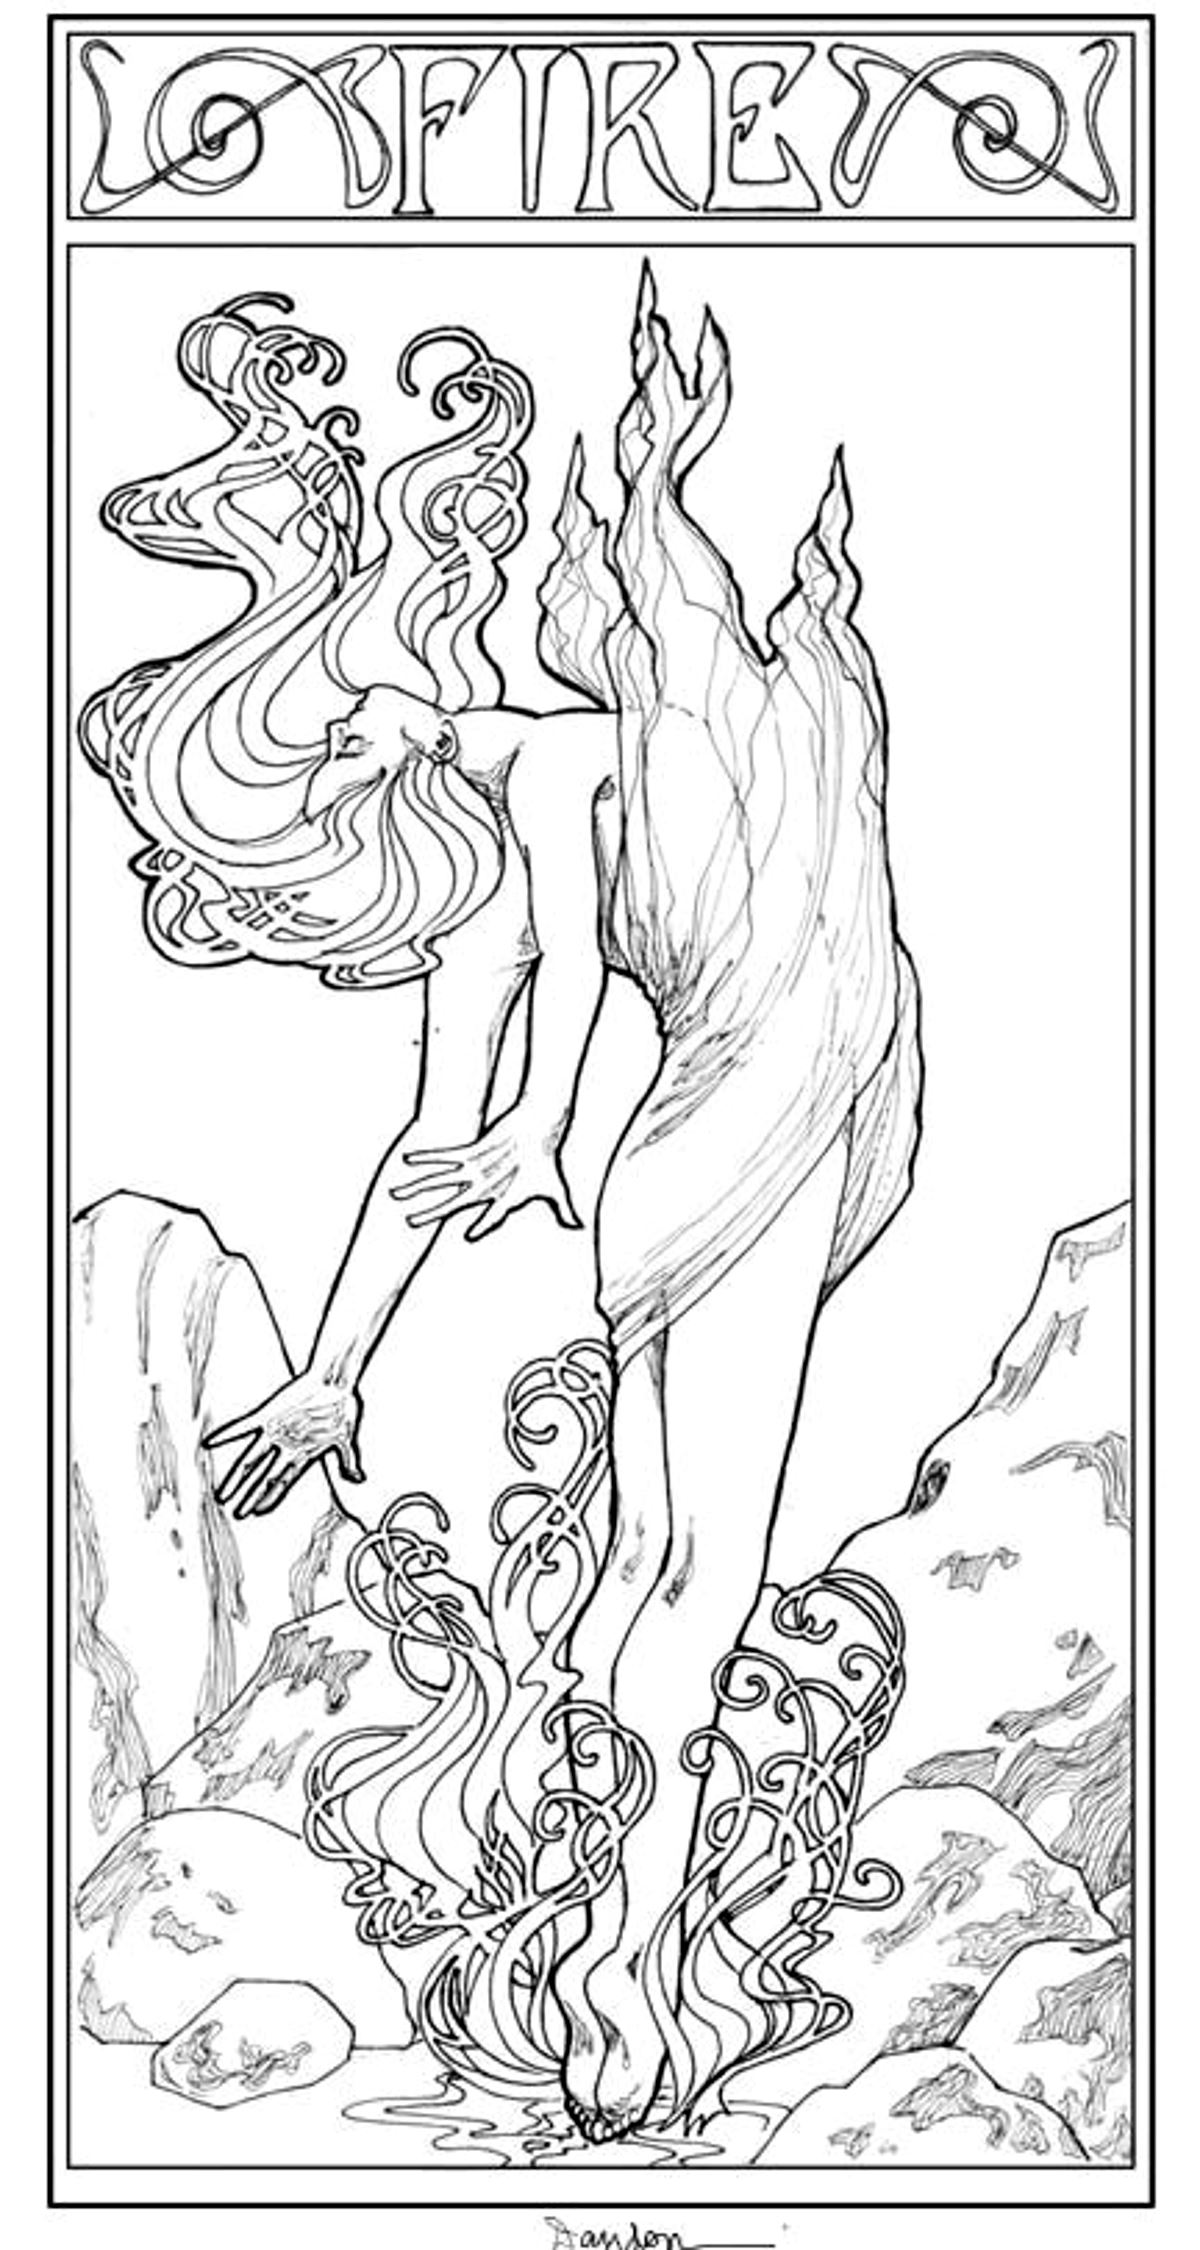 fantasy coloring pages fantasy art coloring pages at getdrawings free download pages coloring fantasy